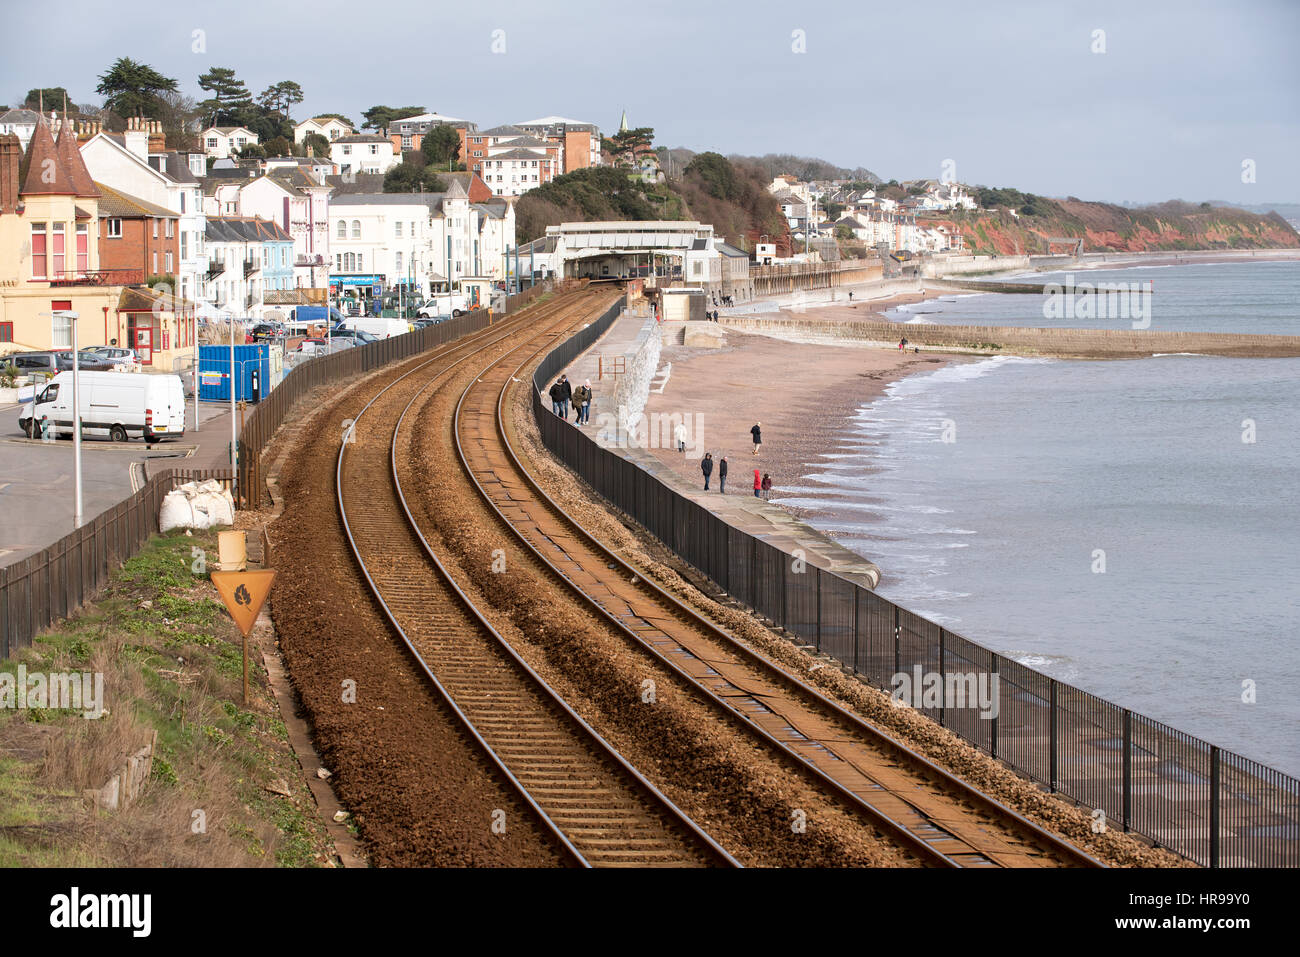 Railway lines run along the coast at Dawlish a seaside resort in south Devon England UK - Stock Image